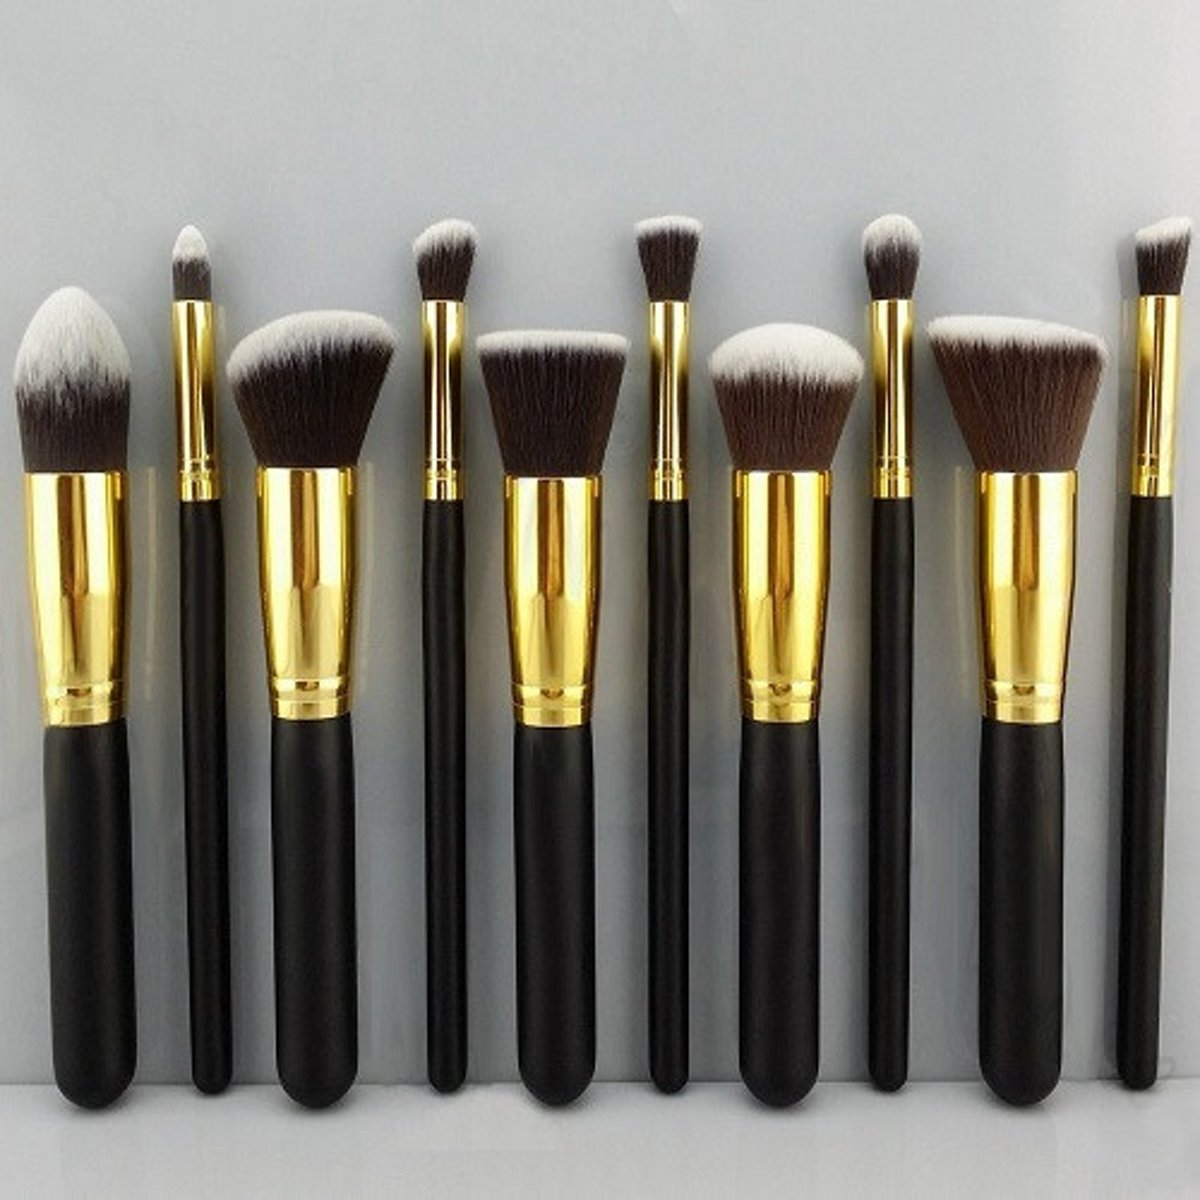 Professionele kwasten Zwart-Goud - 10 delig - Make-up Kwastenset